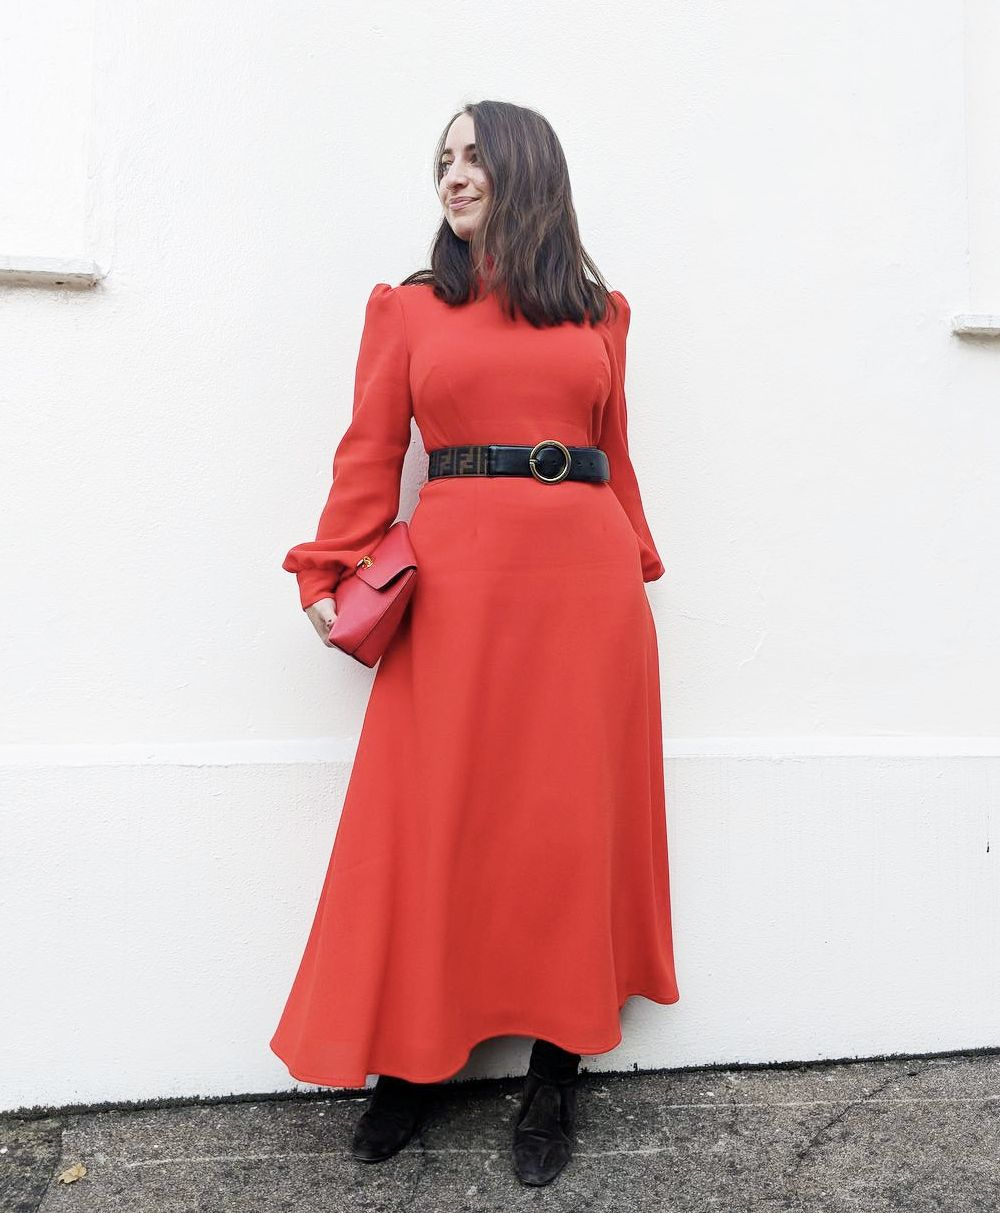 7 Christmas-Party Outfit Ideas for All Types of Dress Codes 7 Christmas-Party Outfit Ideas for All Types of Dress Codes new foto